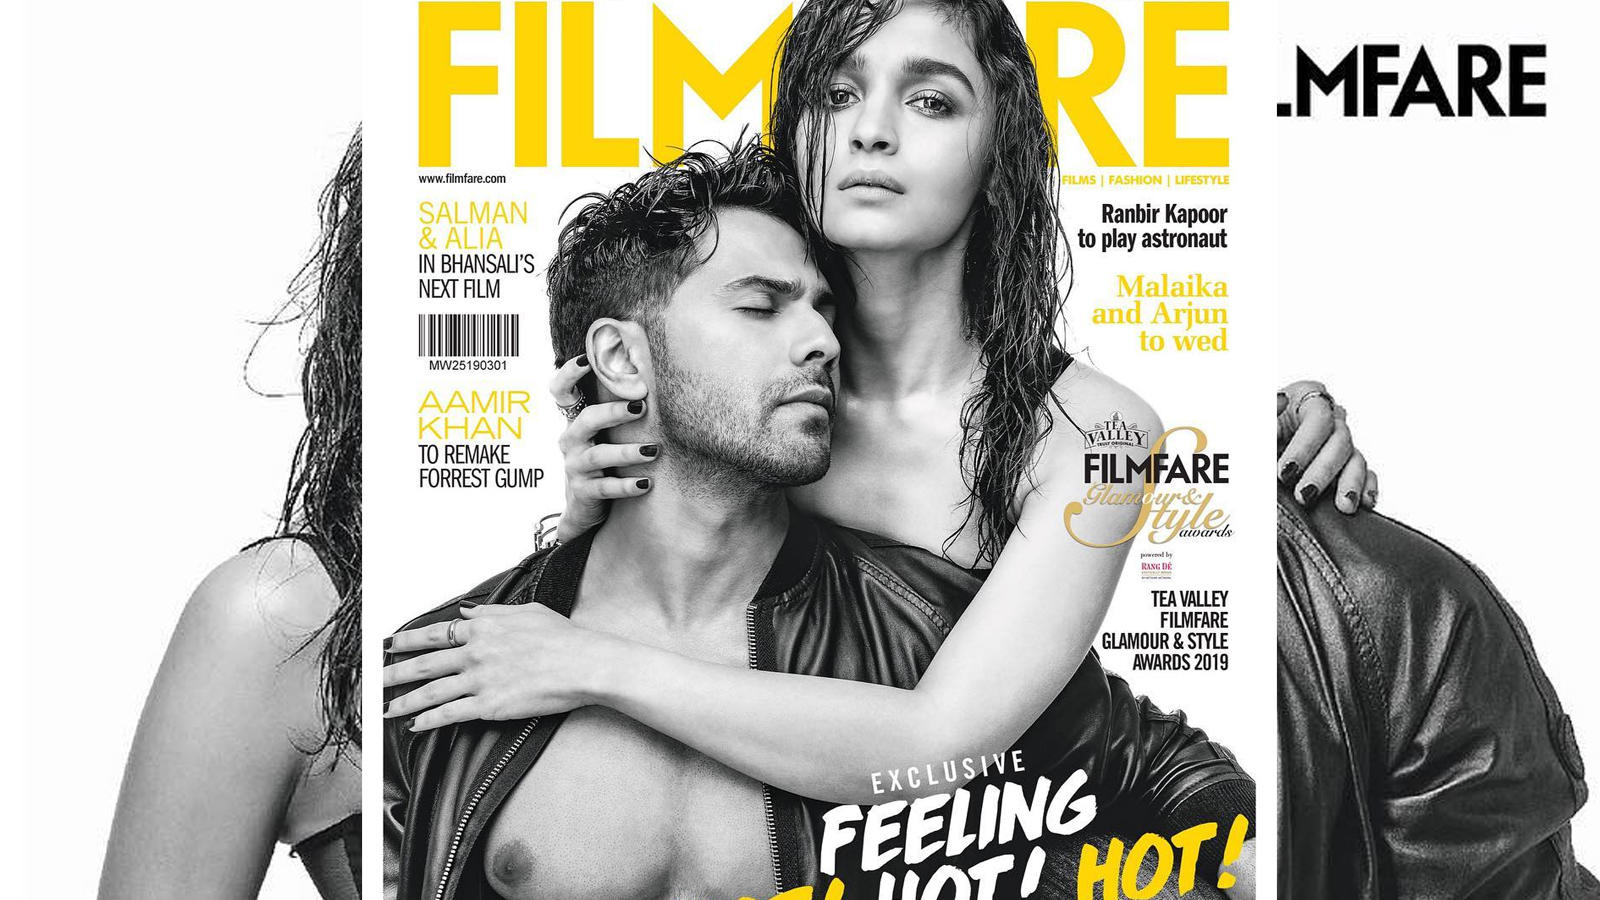 Alia Bhatt and Varun Dhawan sizzle on Filmfare cover page